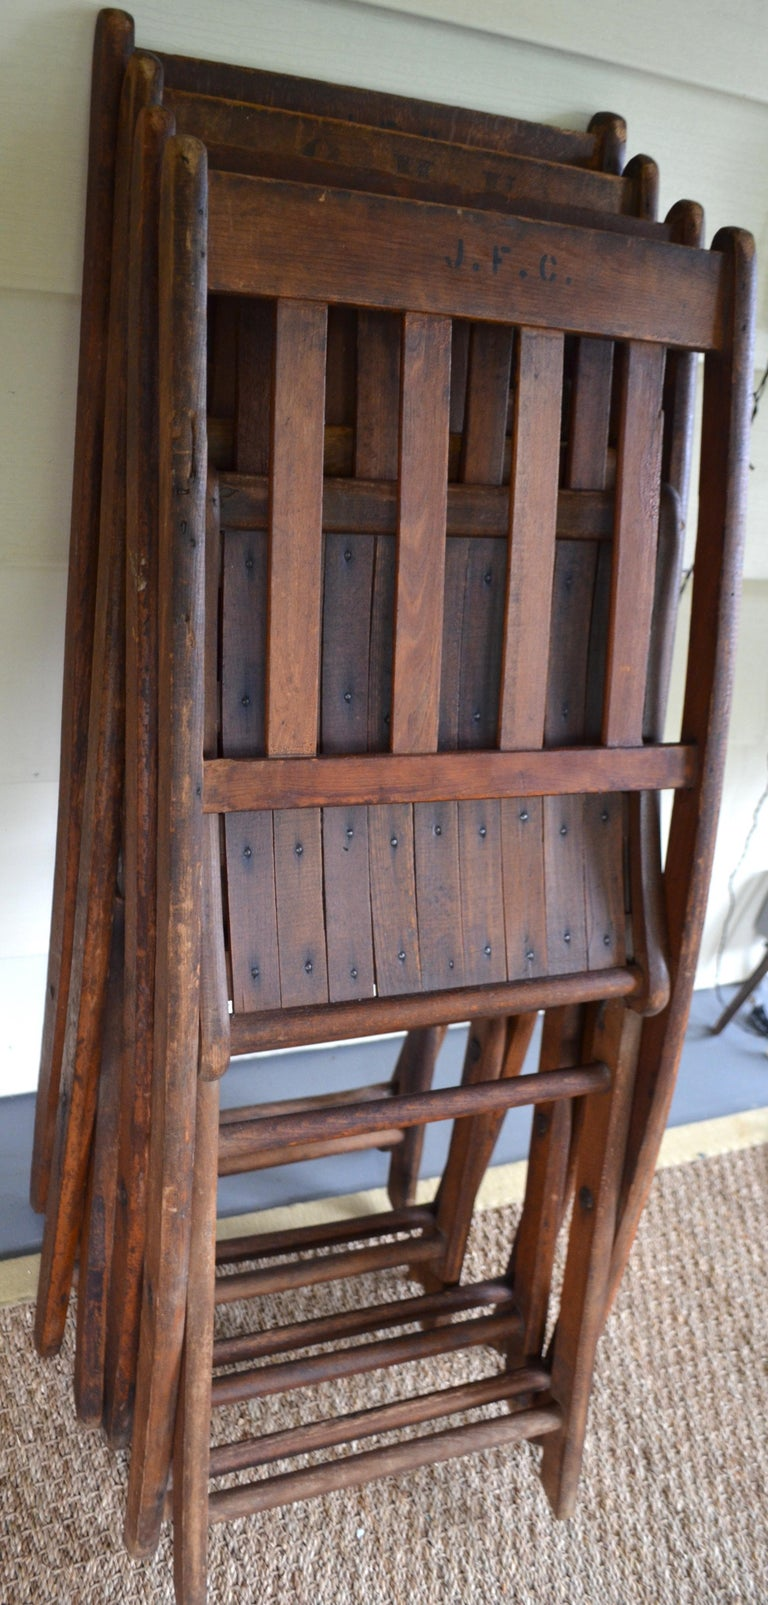 Chairs of Oak, Folding, Late 19th Century European, Set of 4, Multiple Sets For Sale 12